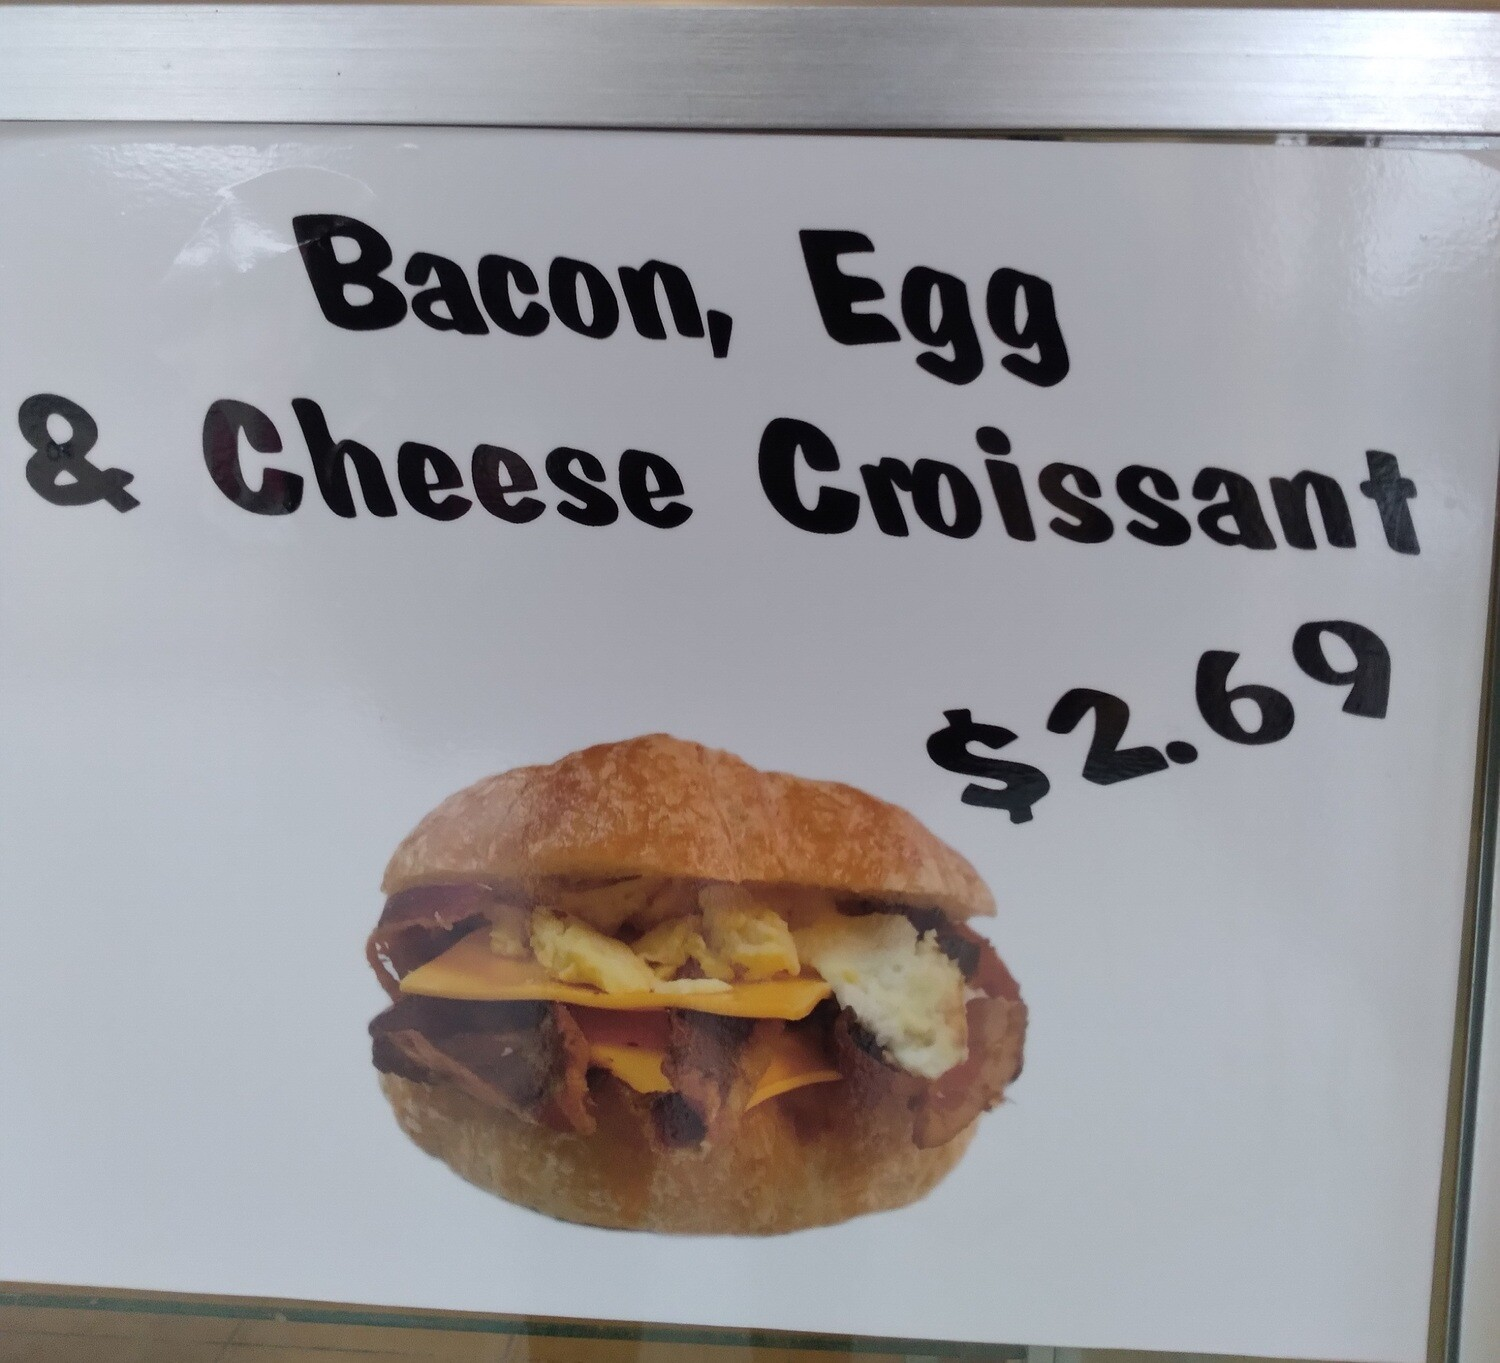 Back, Egg, Cheese Croissant